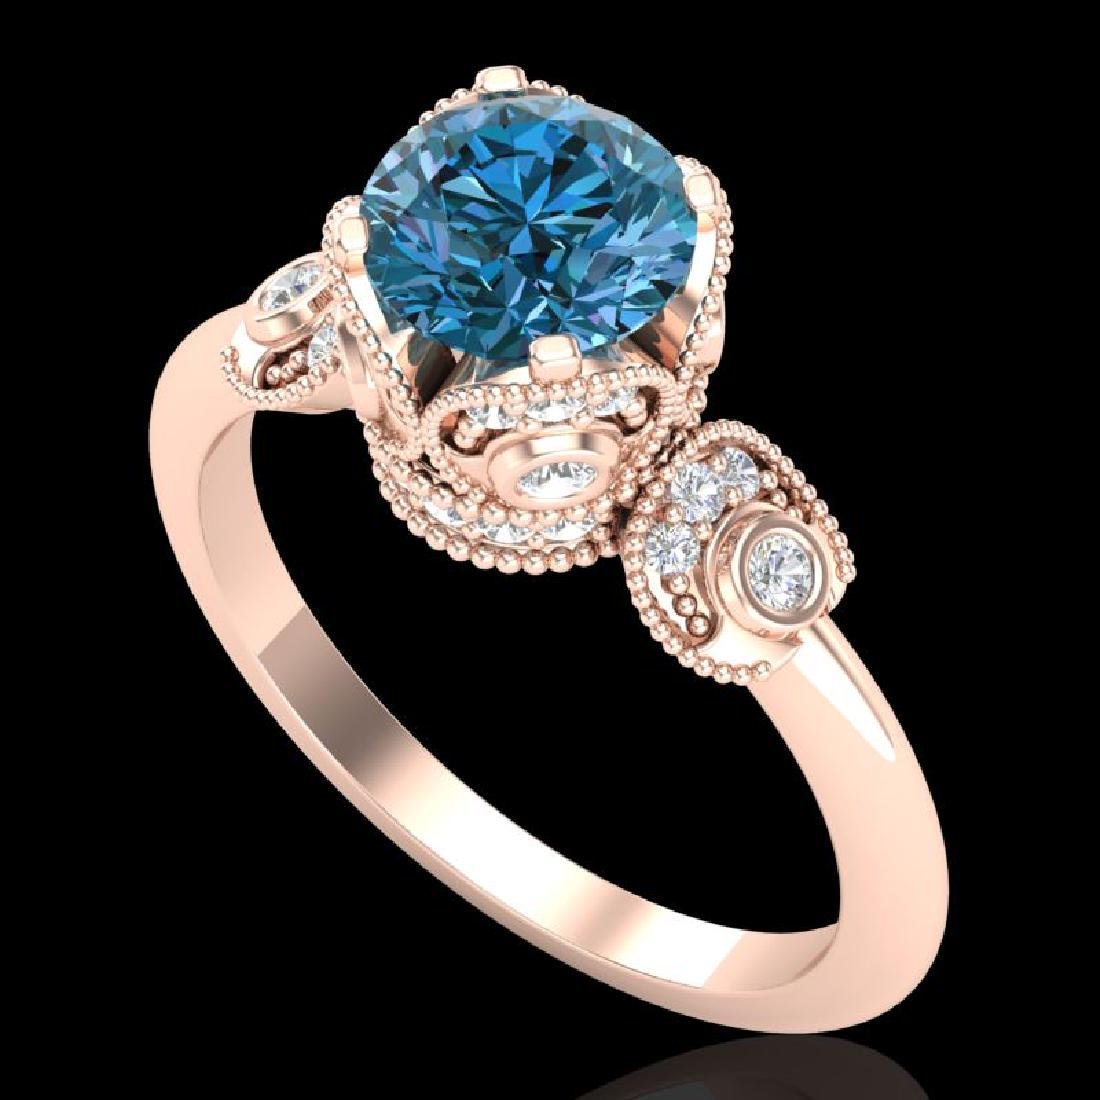 1.75 CTW Fancy Intense Blue Diamond Solitaire Art Deco